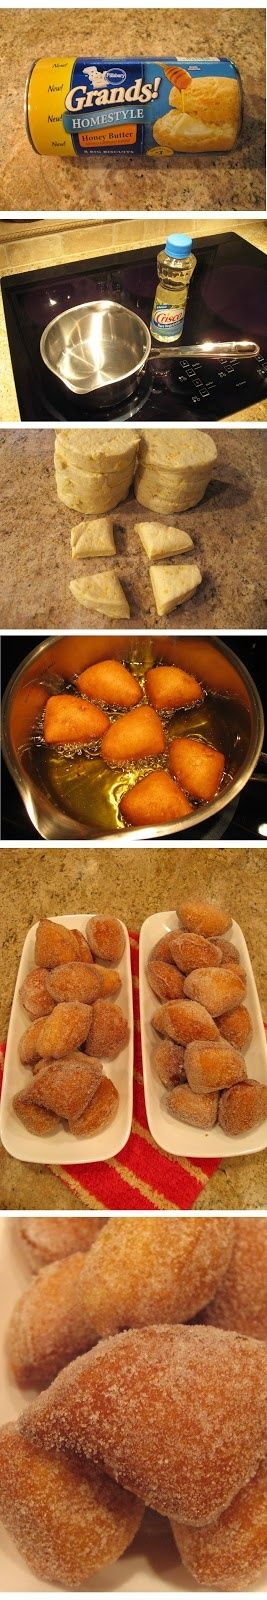 OMG....Easy Biscuit Doughnuts – Cut biscuits into quarters, drop in 200 – 240° oil for a couple of minutes (flip halfway), cool sightly on paper towel, roll in sugar, brown sugar, powdered sugar, ENJOY